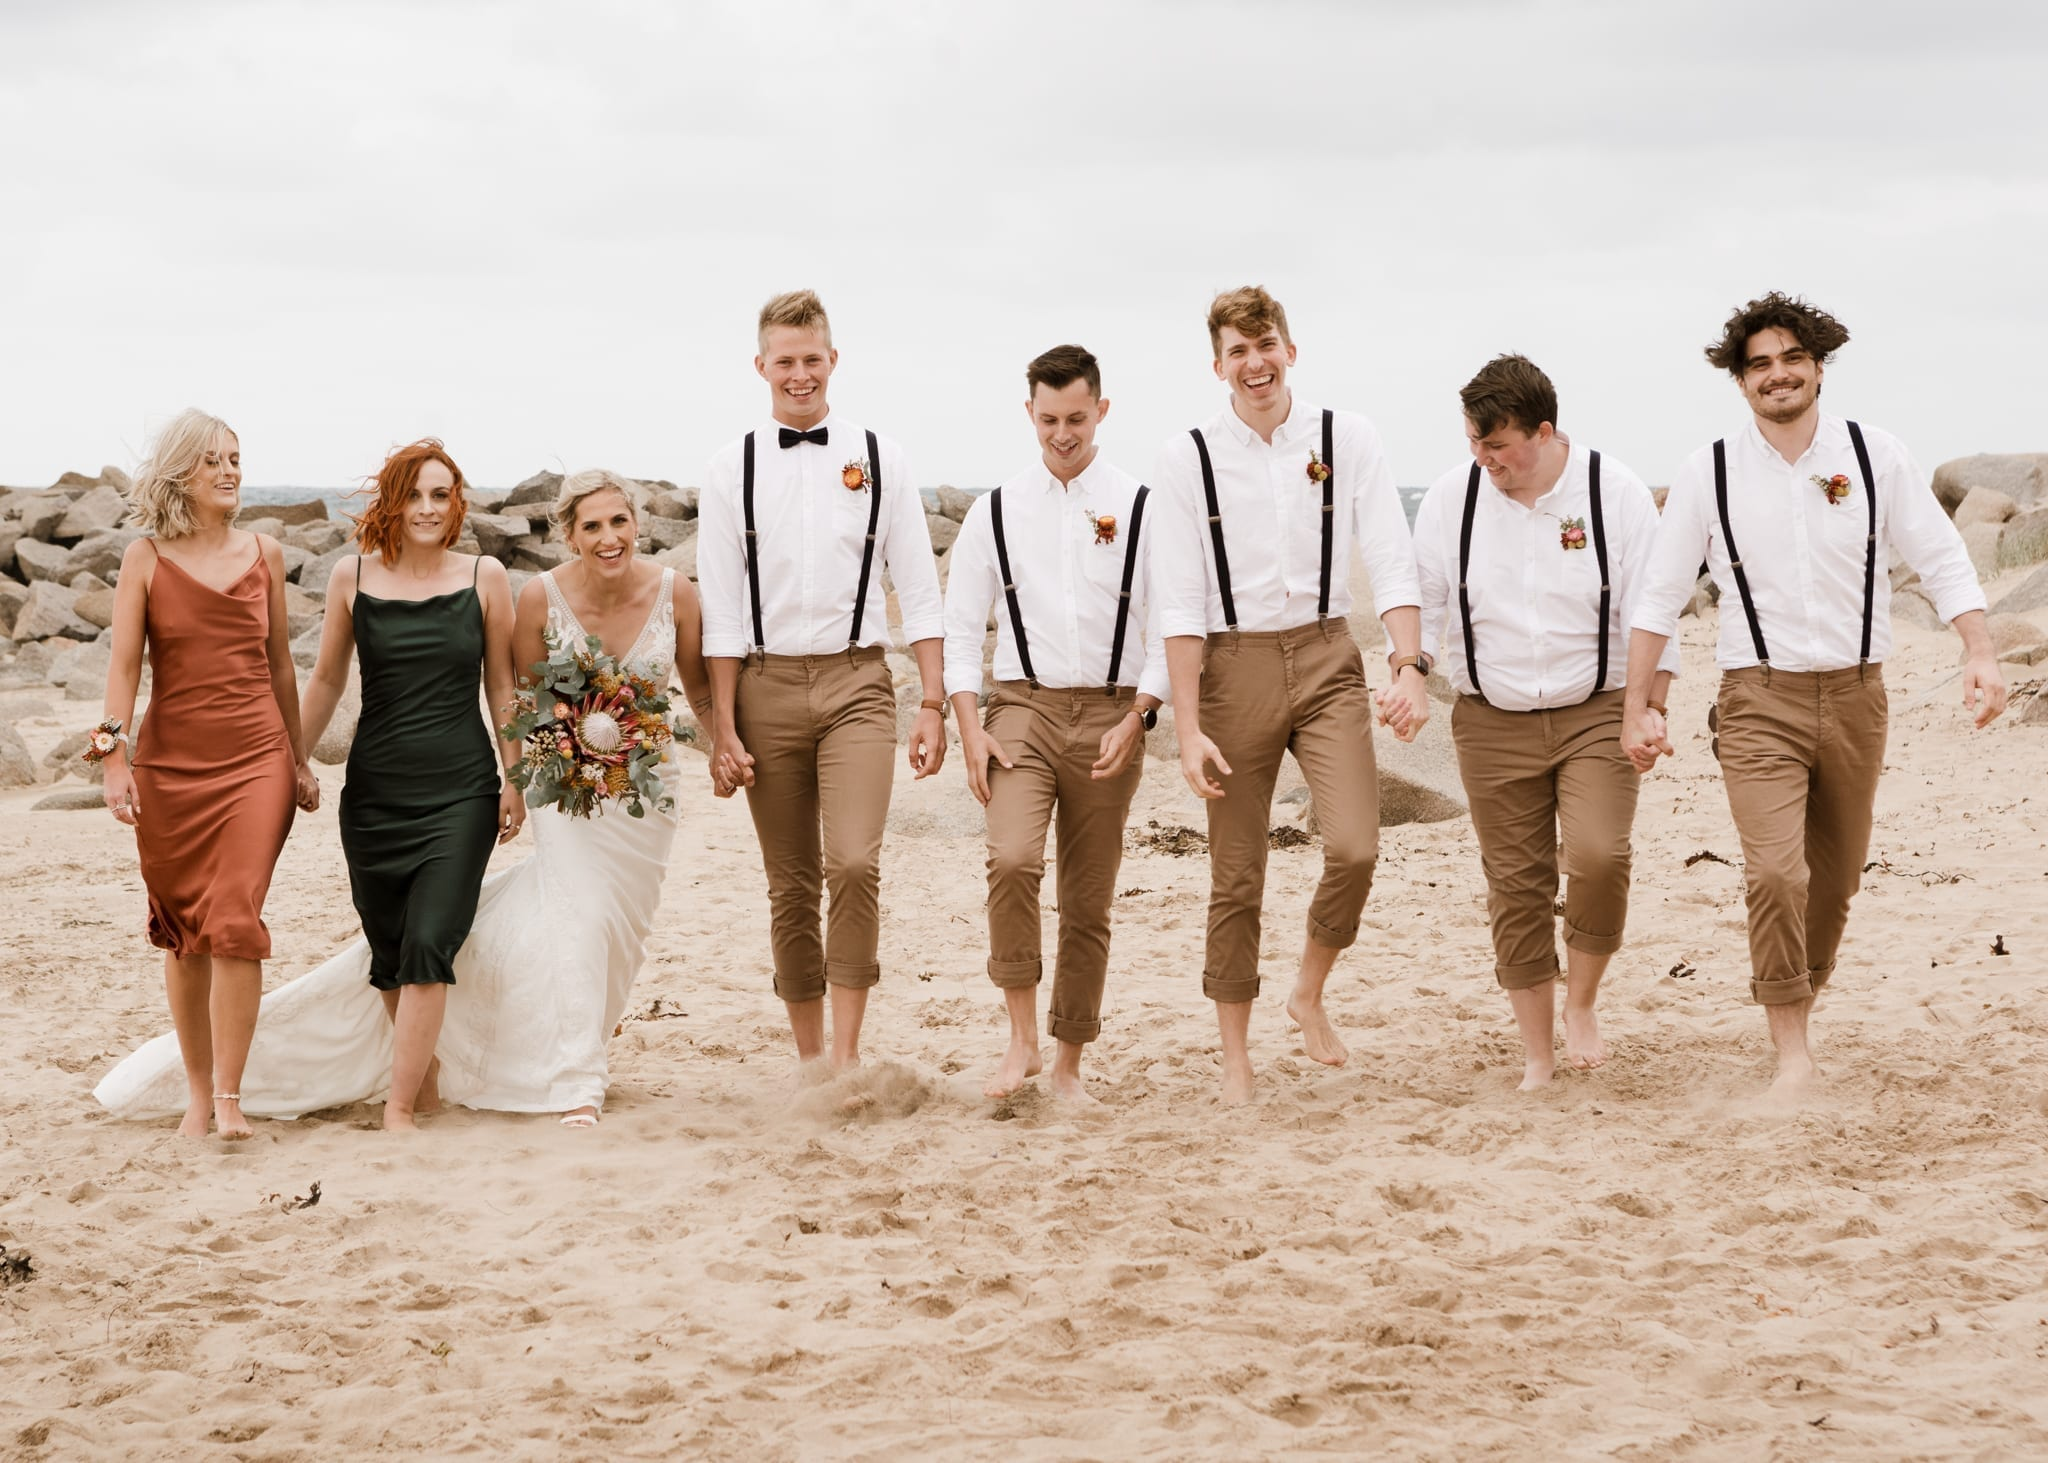 The wedding party at Ladies Beach